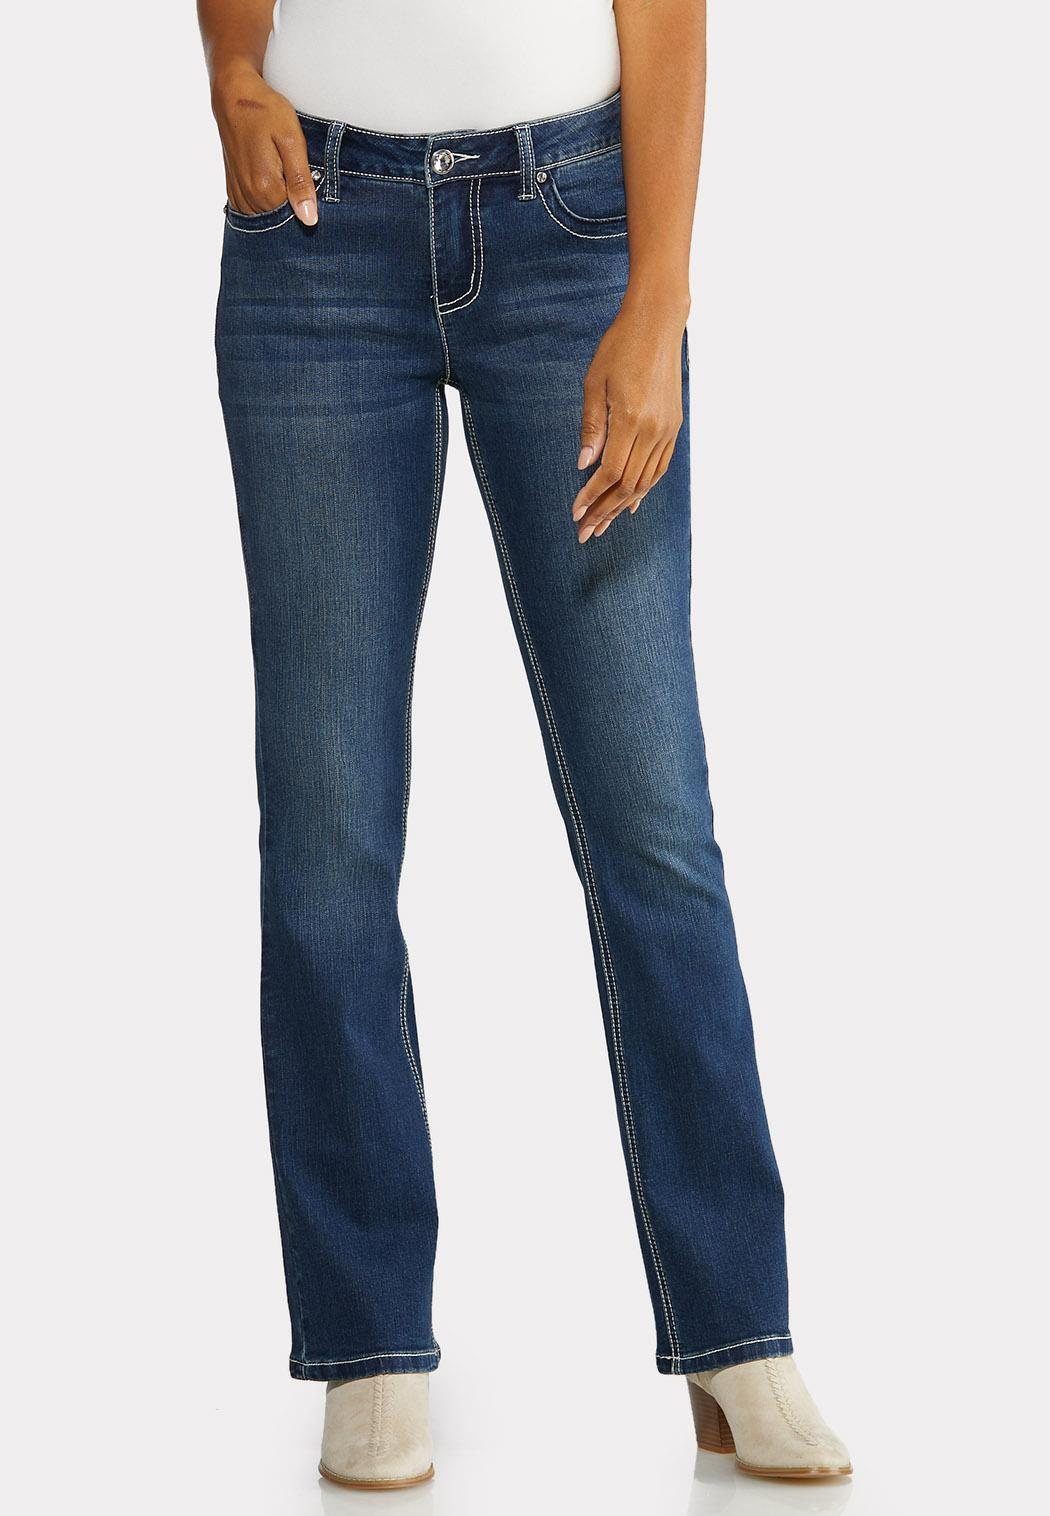 Petite Bling Cross Pocket Jeans (Item #43991559)